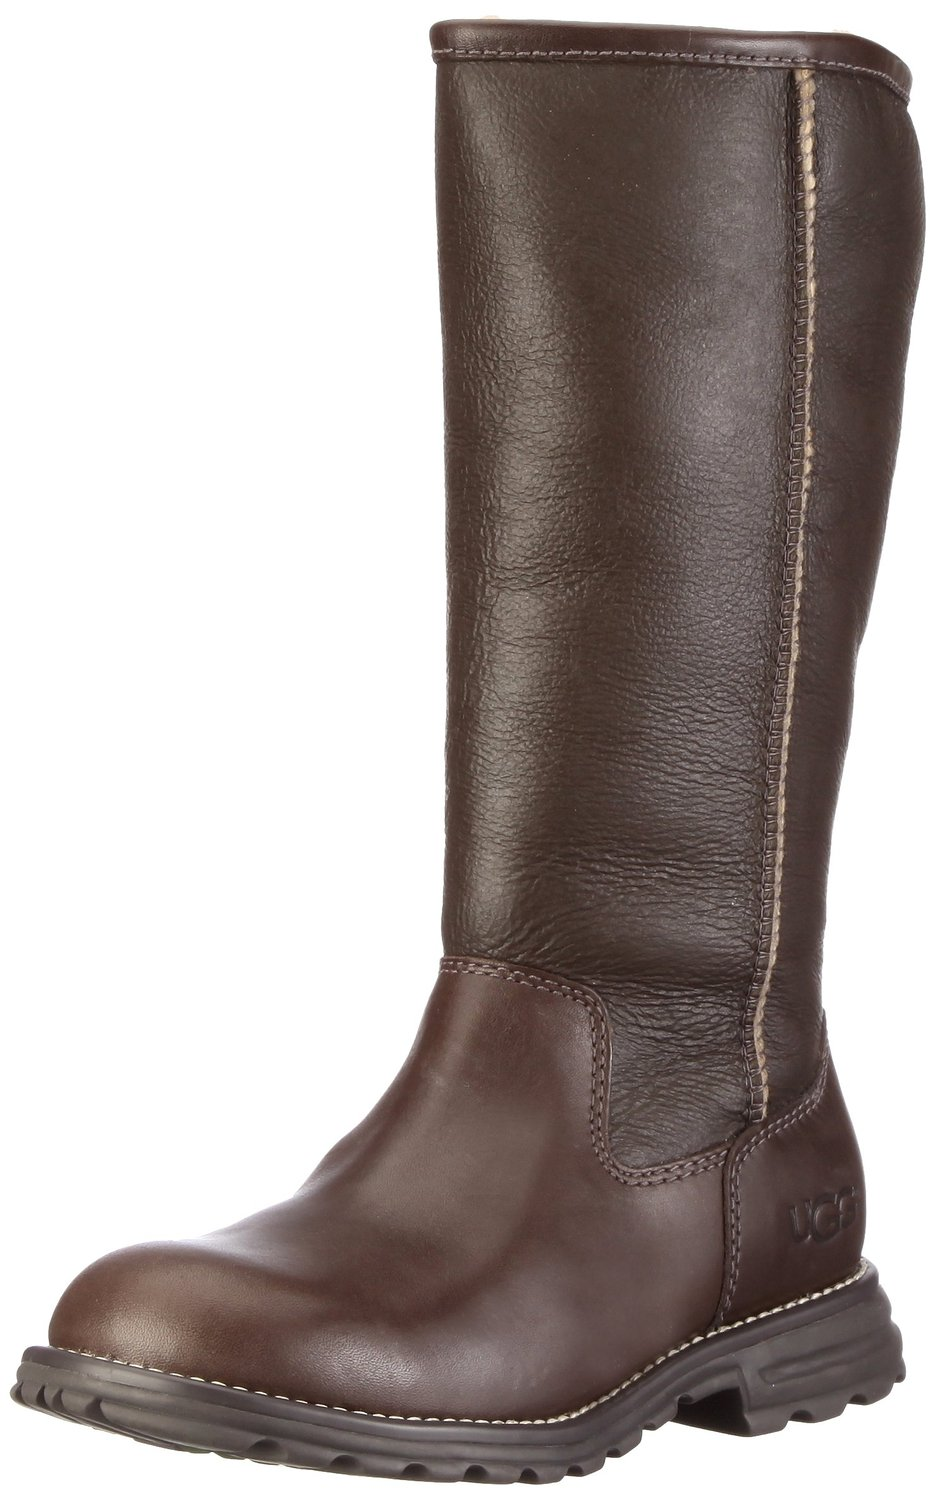 Ugg Knee High Winter Boots